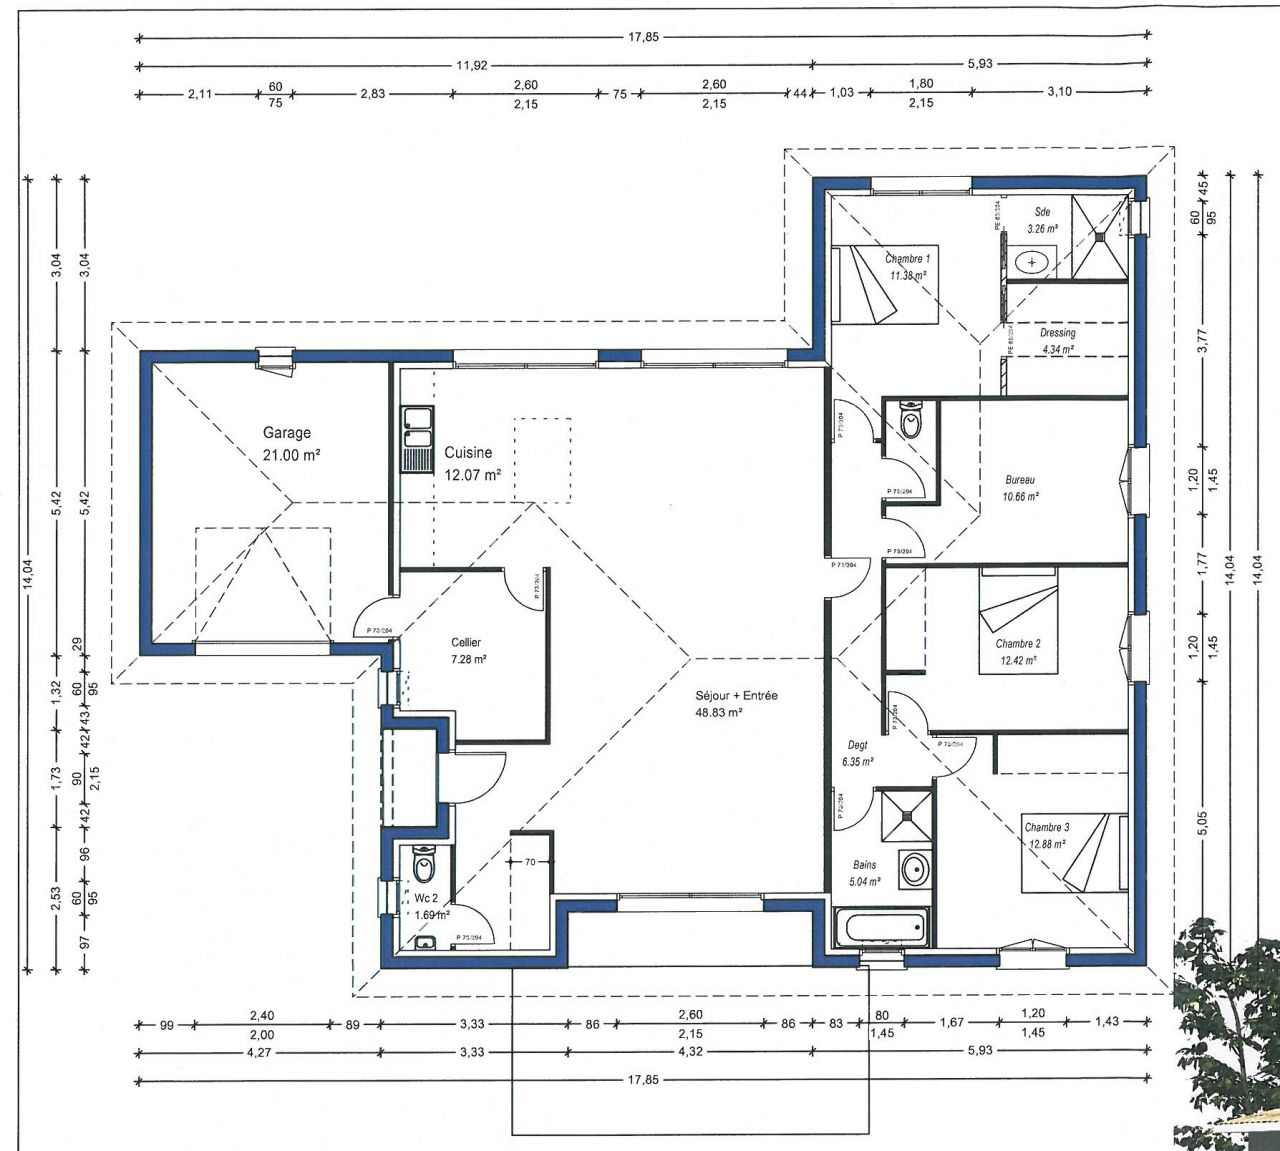 Plan de masse maison gratuit jc77 jornalagora for Plan de maison zone llc